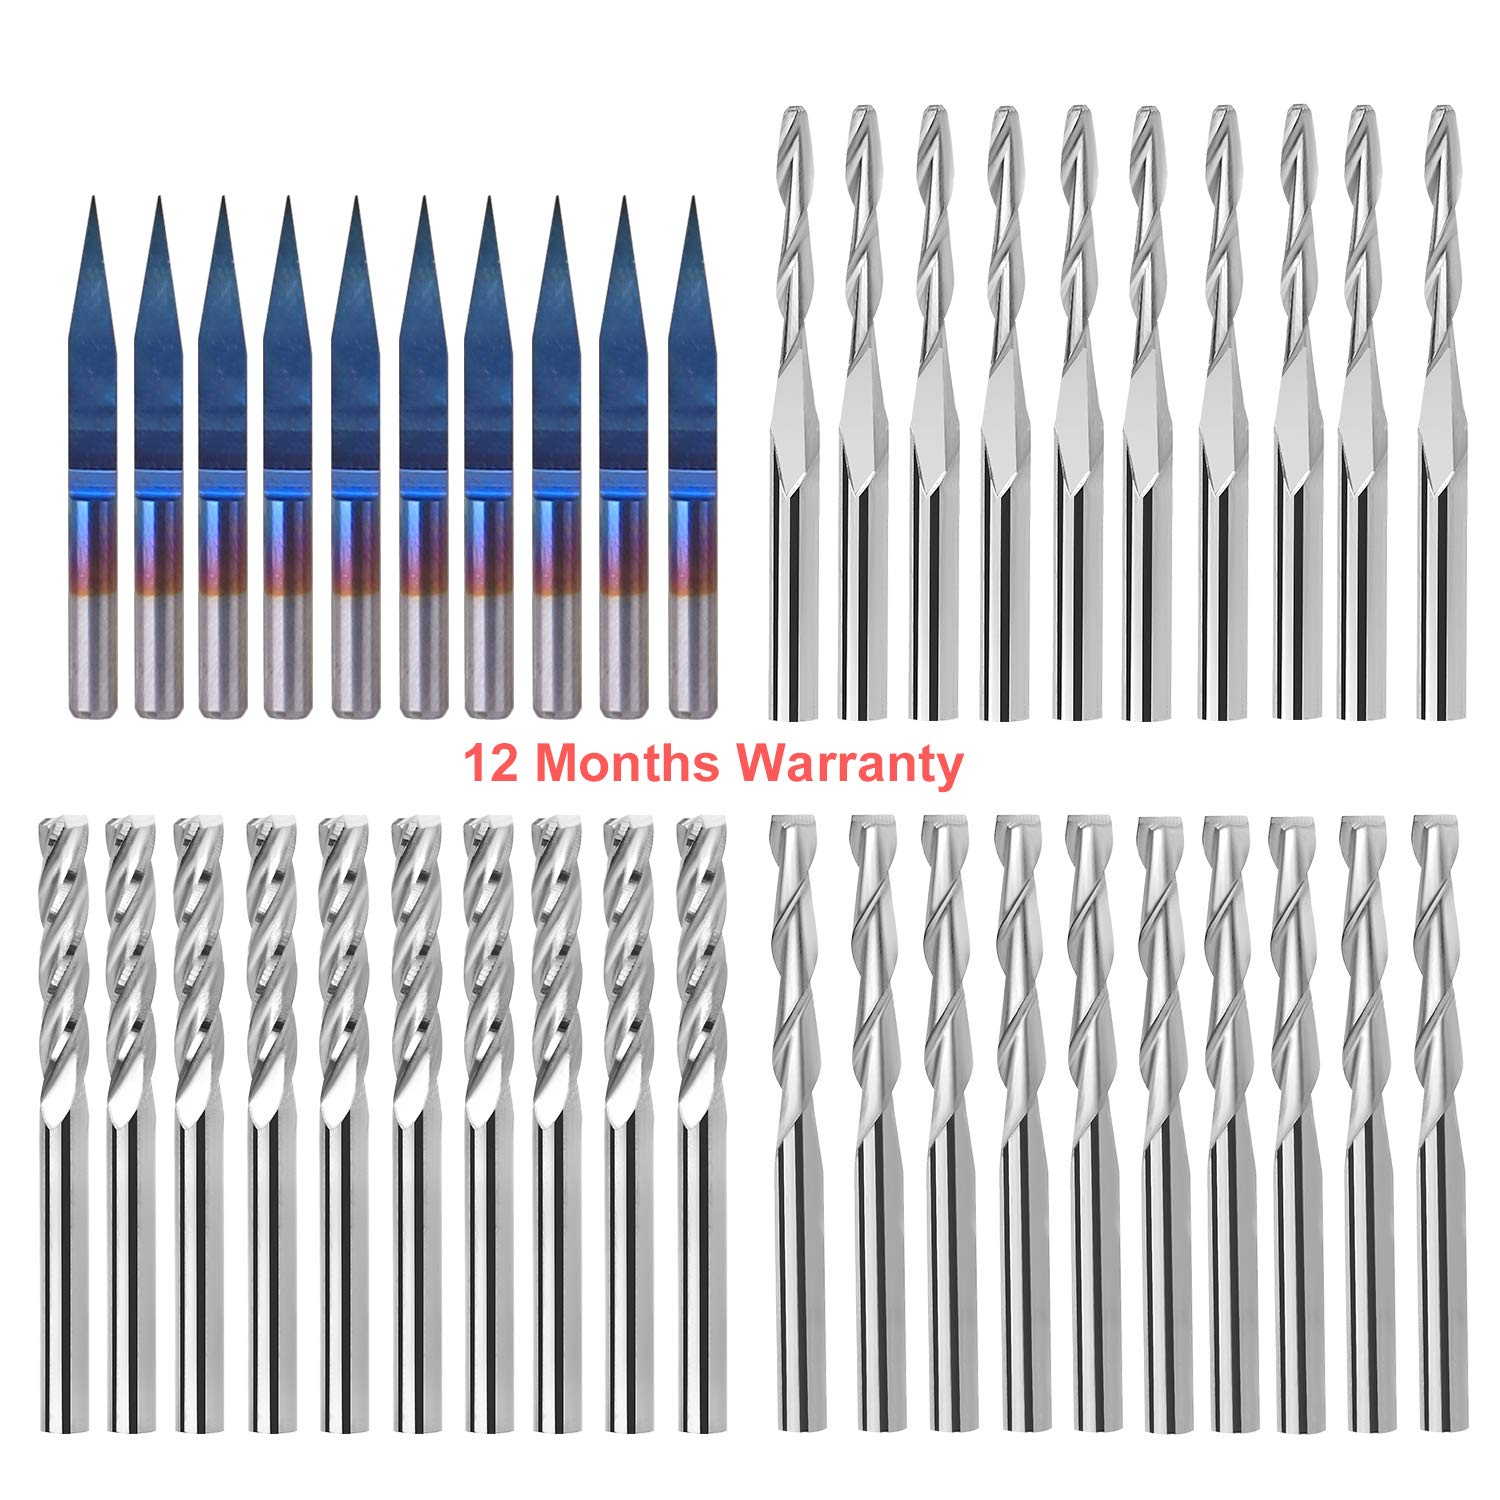 3mm Dia-25mm Flute Length-50mm Full Length, for Aluminum Wkstool /Φ3mm,Micro Solid Carbide Drill Bits,Straight Shank,Uncoated,Metric,for Aluminium Copper CNC Lathe Drill